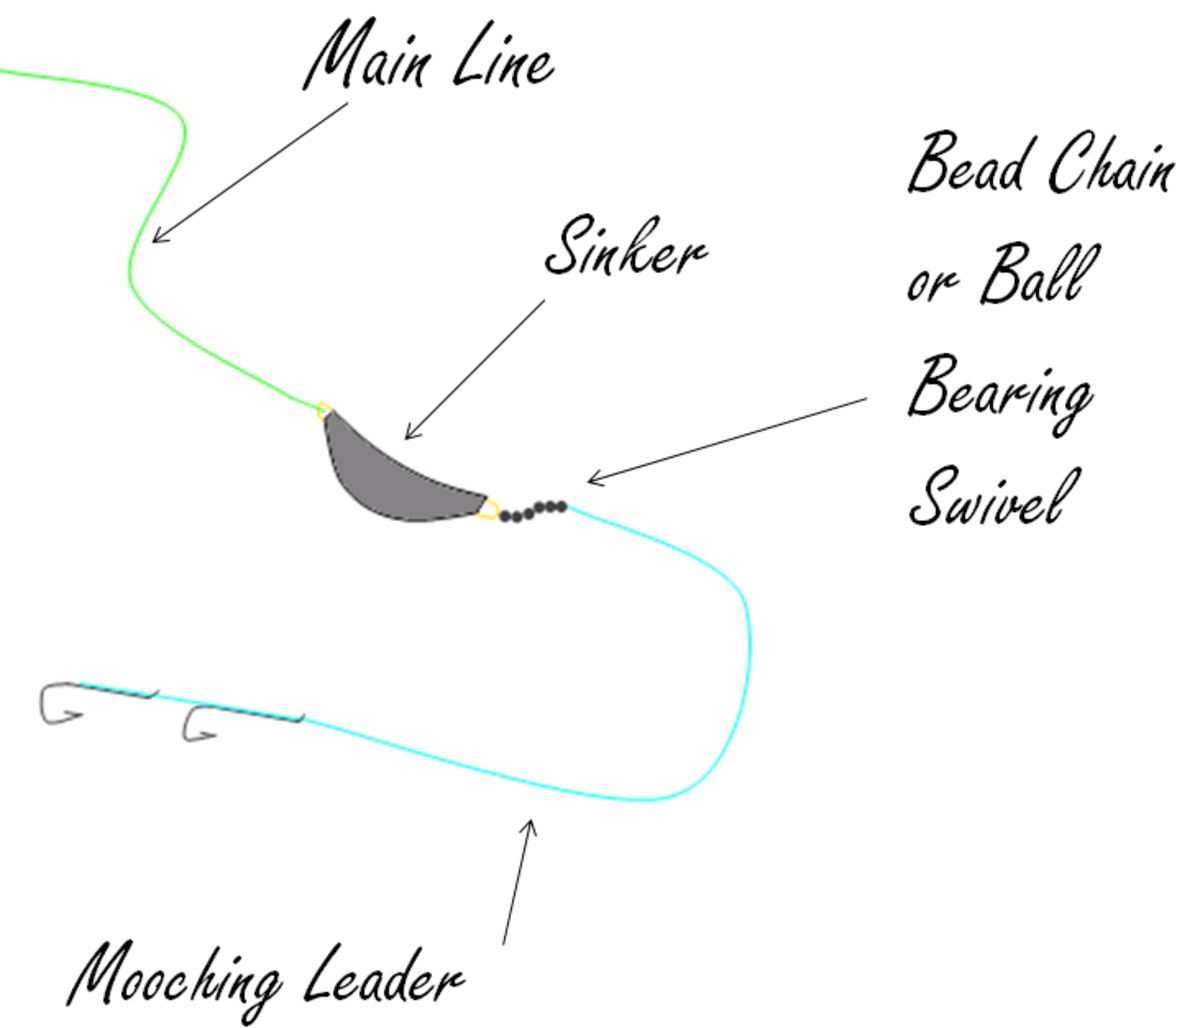 A salmon mooching rig. The crescent sinker shown can be substituted with a sinker slide and cannonball sinker.